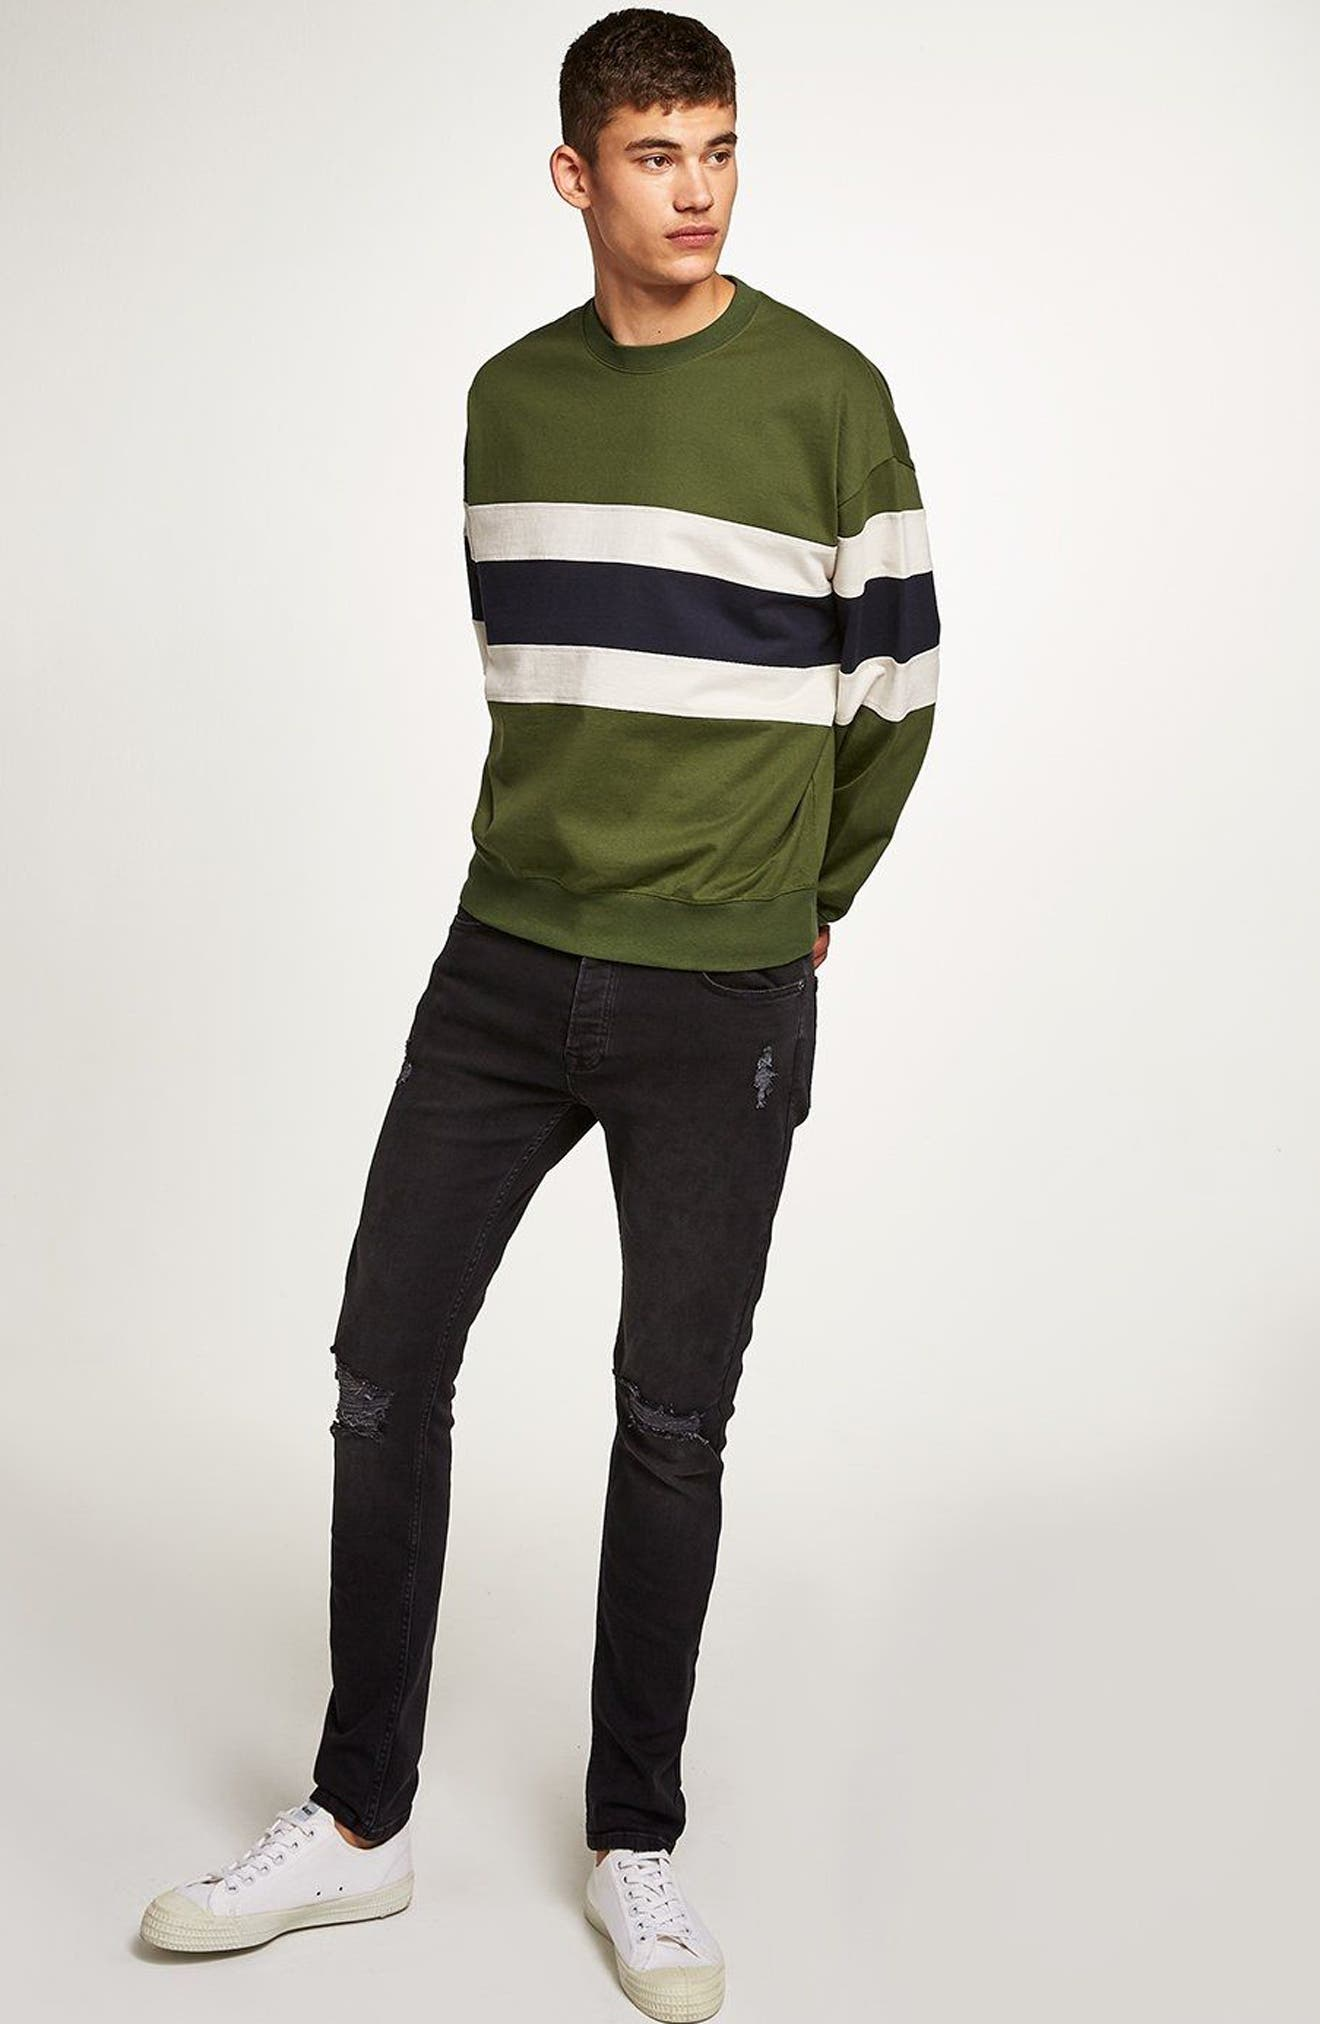 Colorblock Stripe Sweatshirt,                             Alternate thumbnail 8, color,                             330